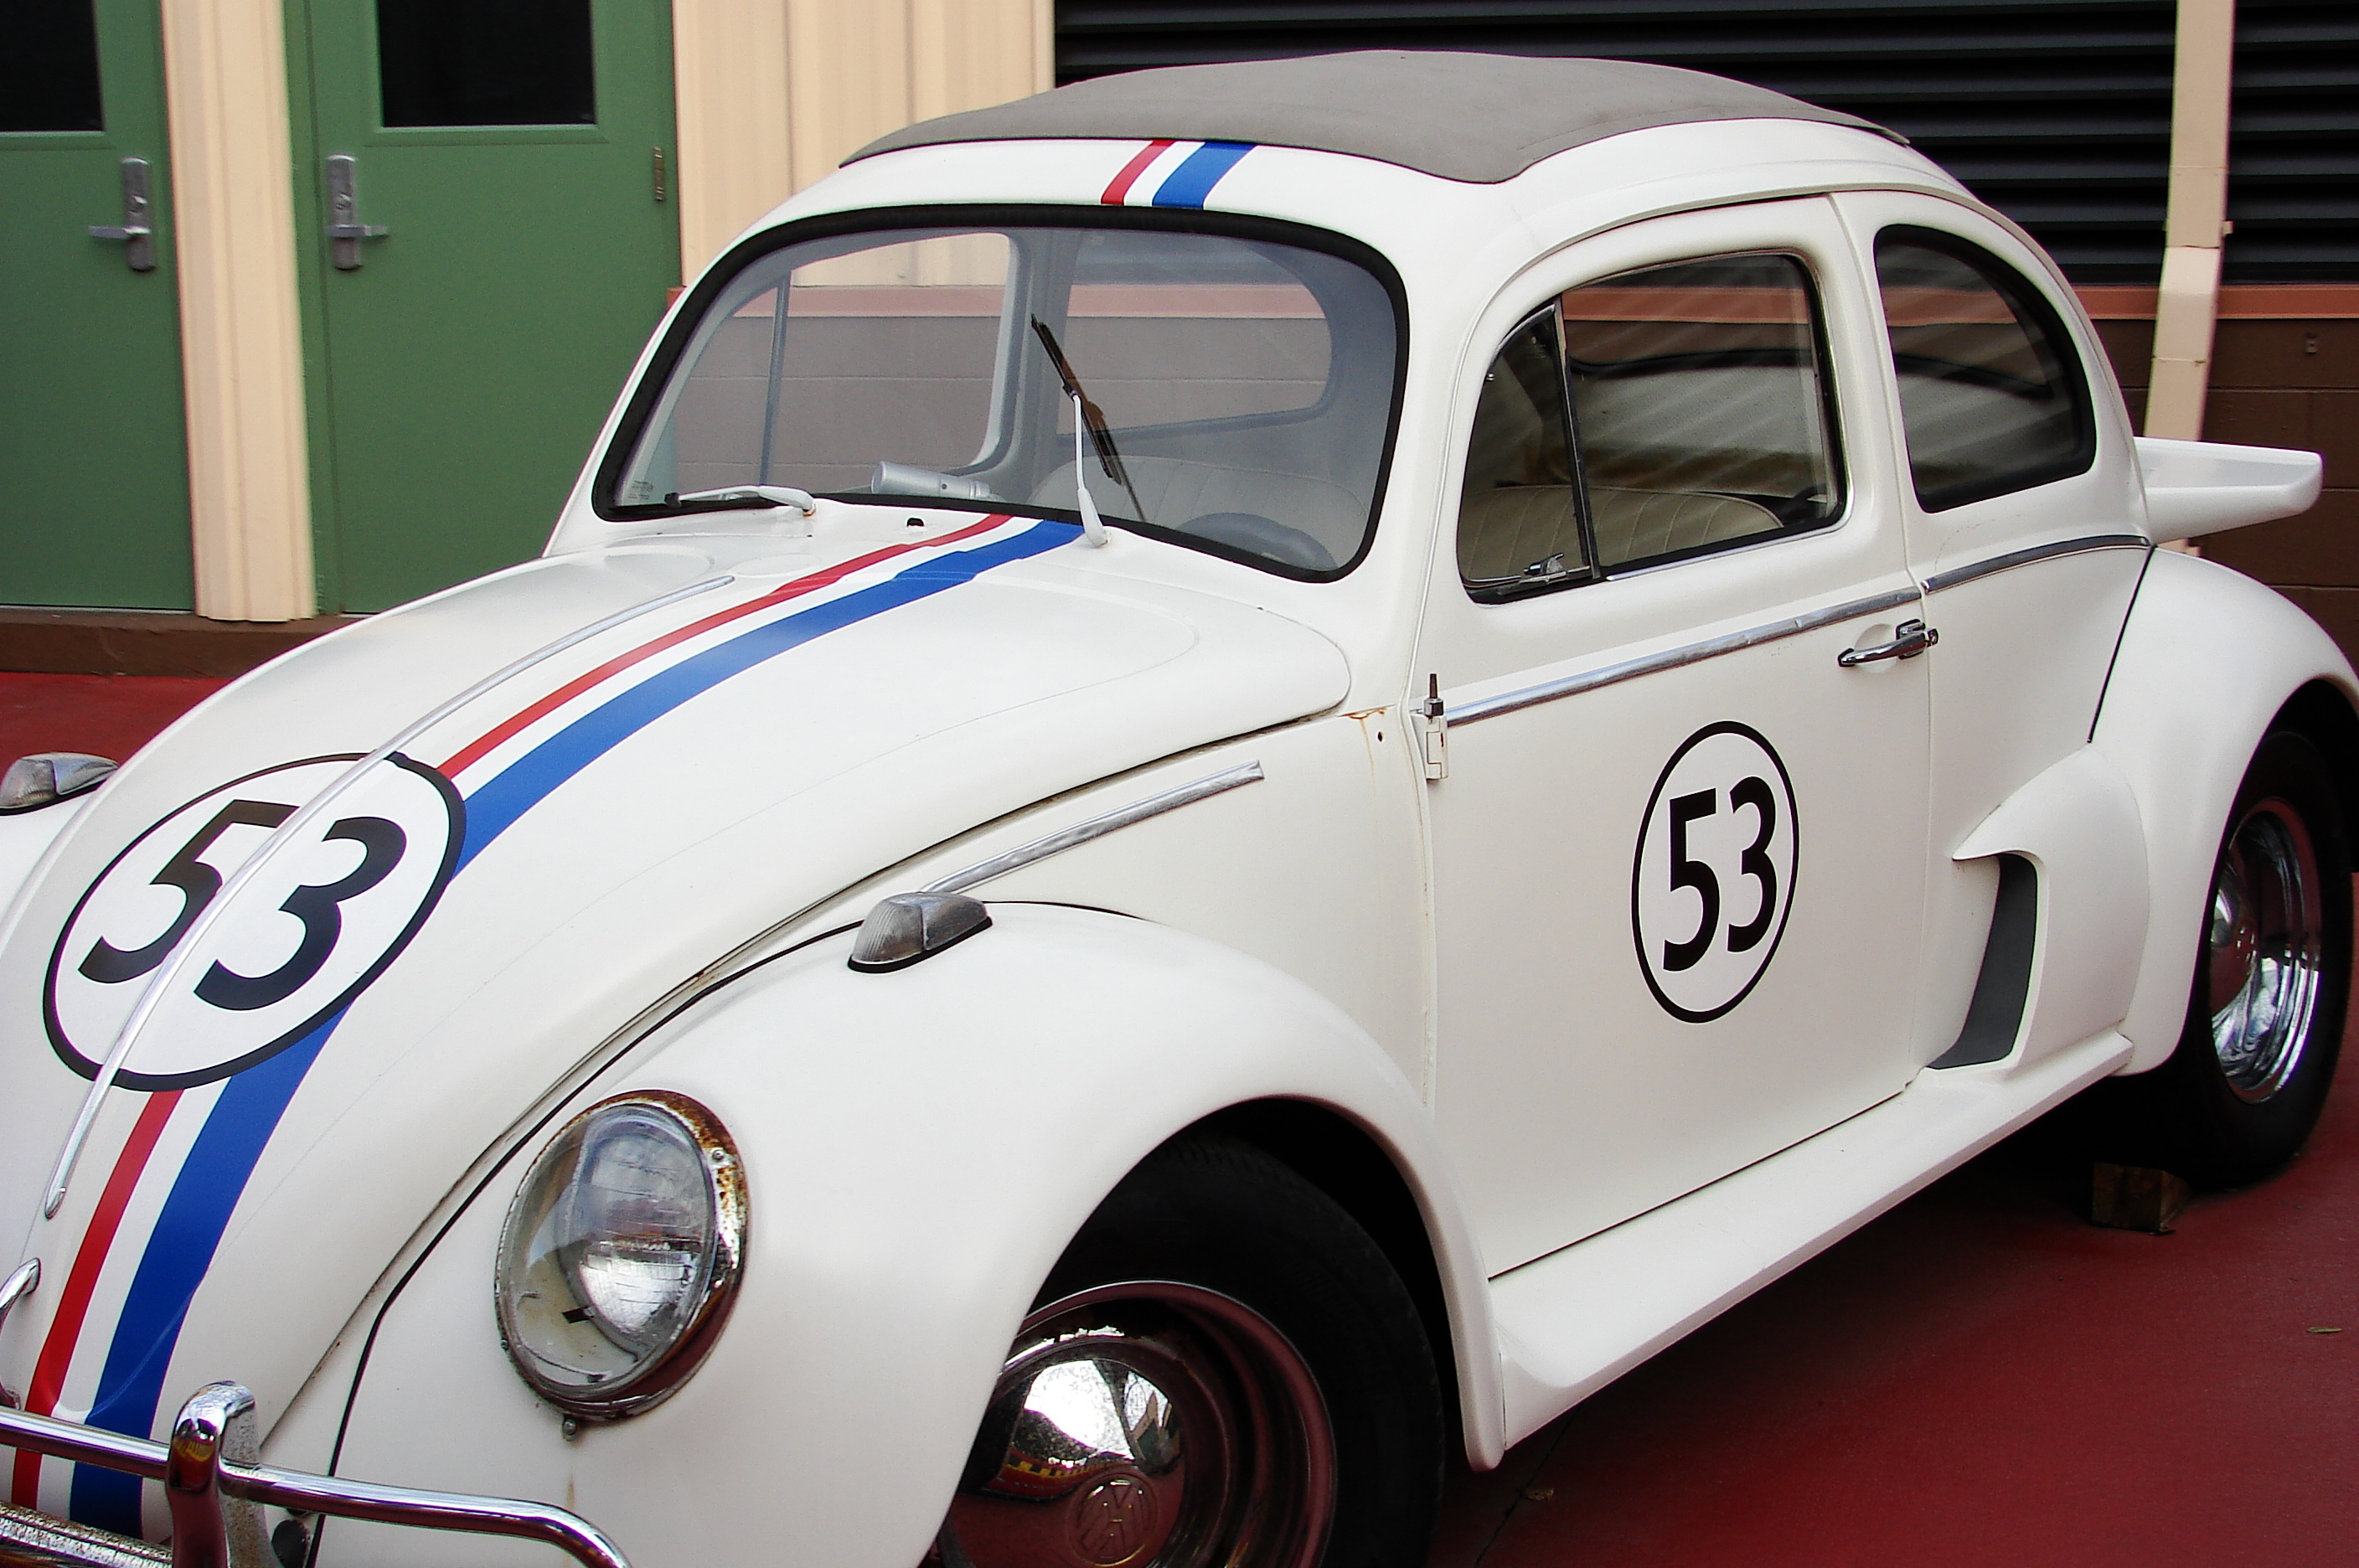 Will Google's new driverless car outperform Herbie the Love Bug?